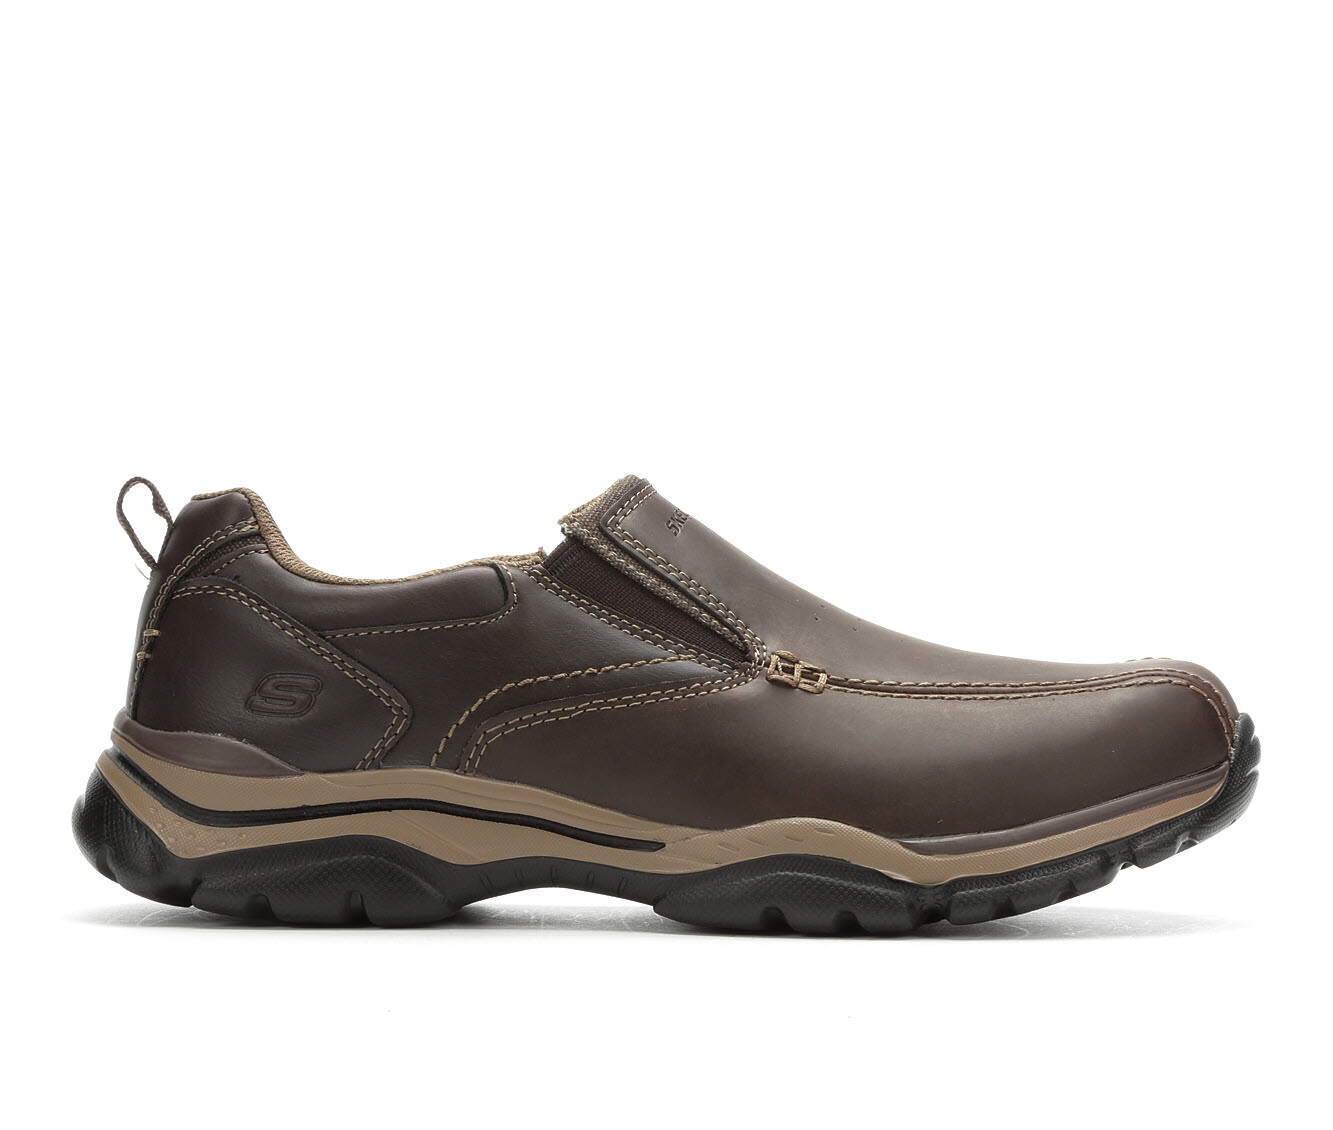 Men's Skechers Wasik 52469 Casual Shoes with paypal discount top quality SnODoRNpnC